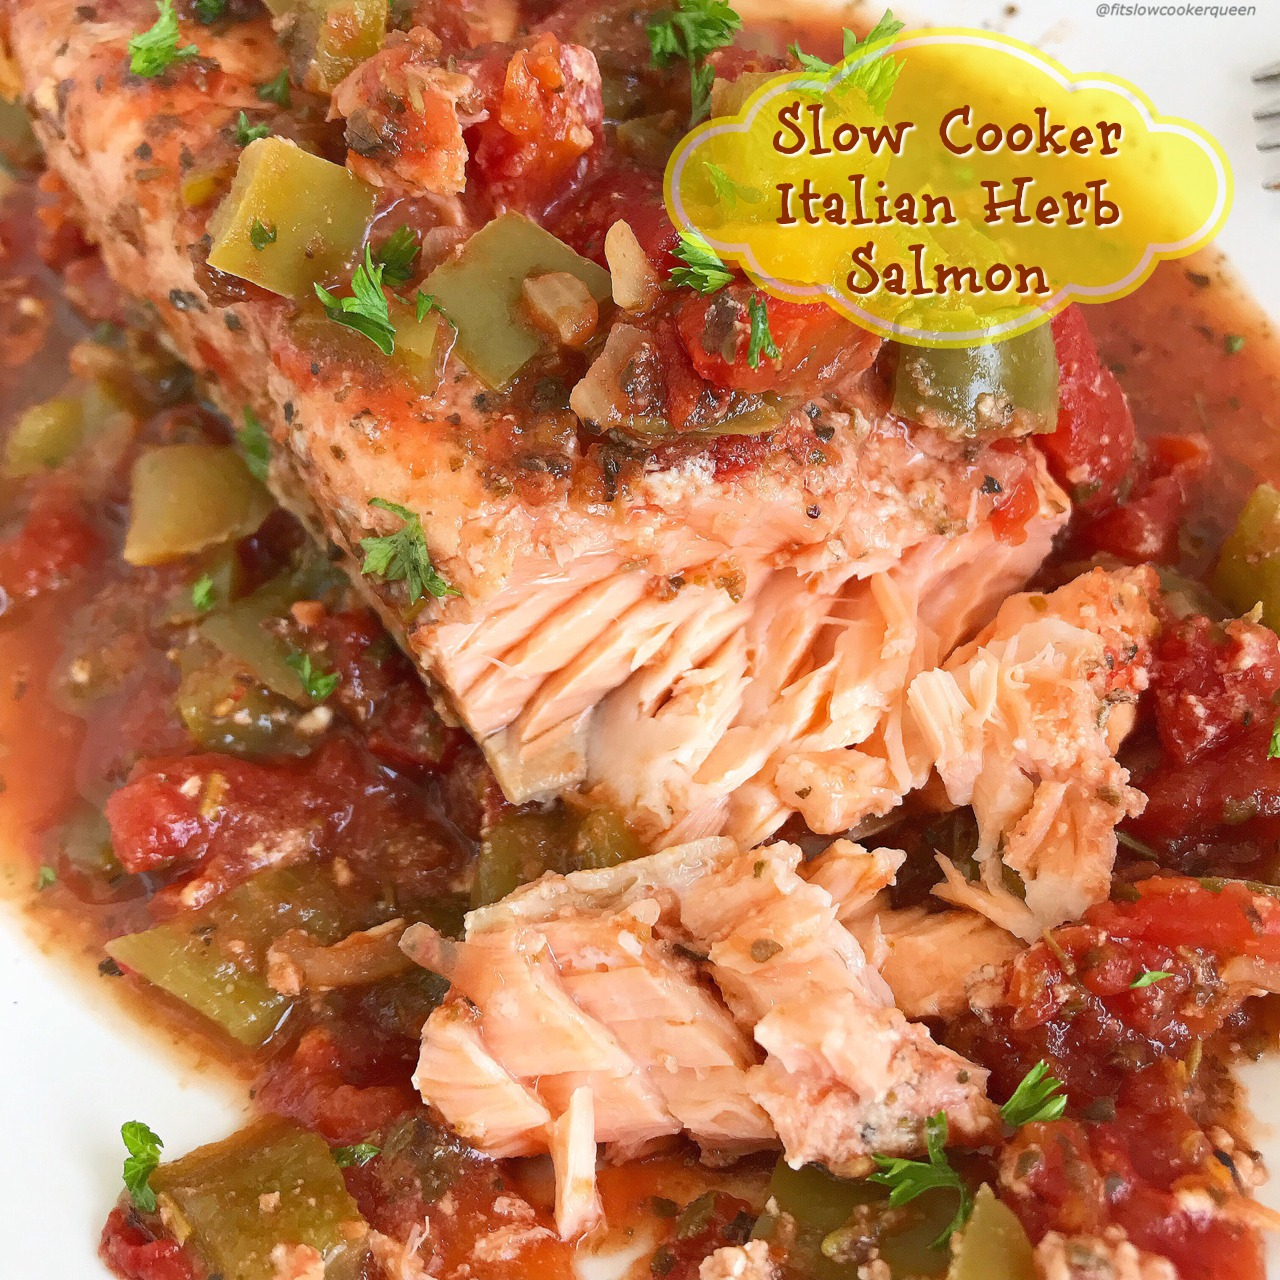 Of course you can cook salmon in the slow cooker! Italian seasonings, diced tomatoes, bell pepper, and fresh herbs cook with salmon in this healthy paleo and whole30 dish. Quick & easy, this slow cooker recipe is done in just a couple hours.